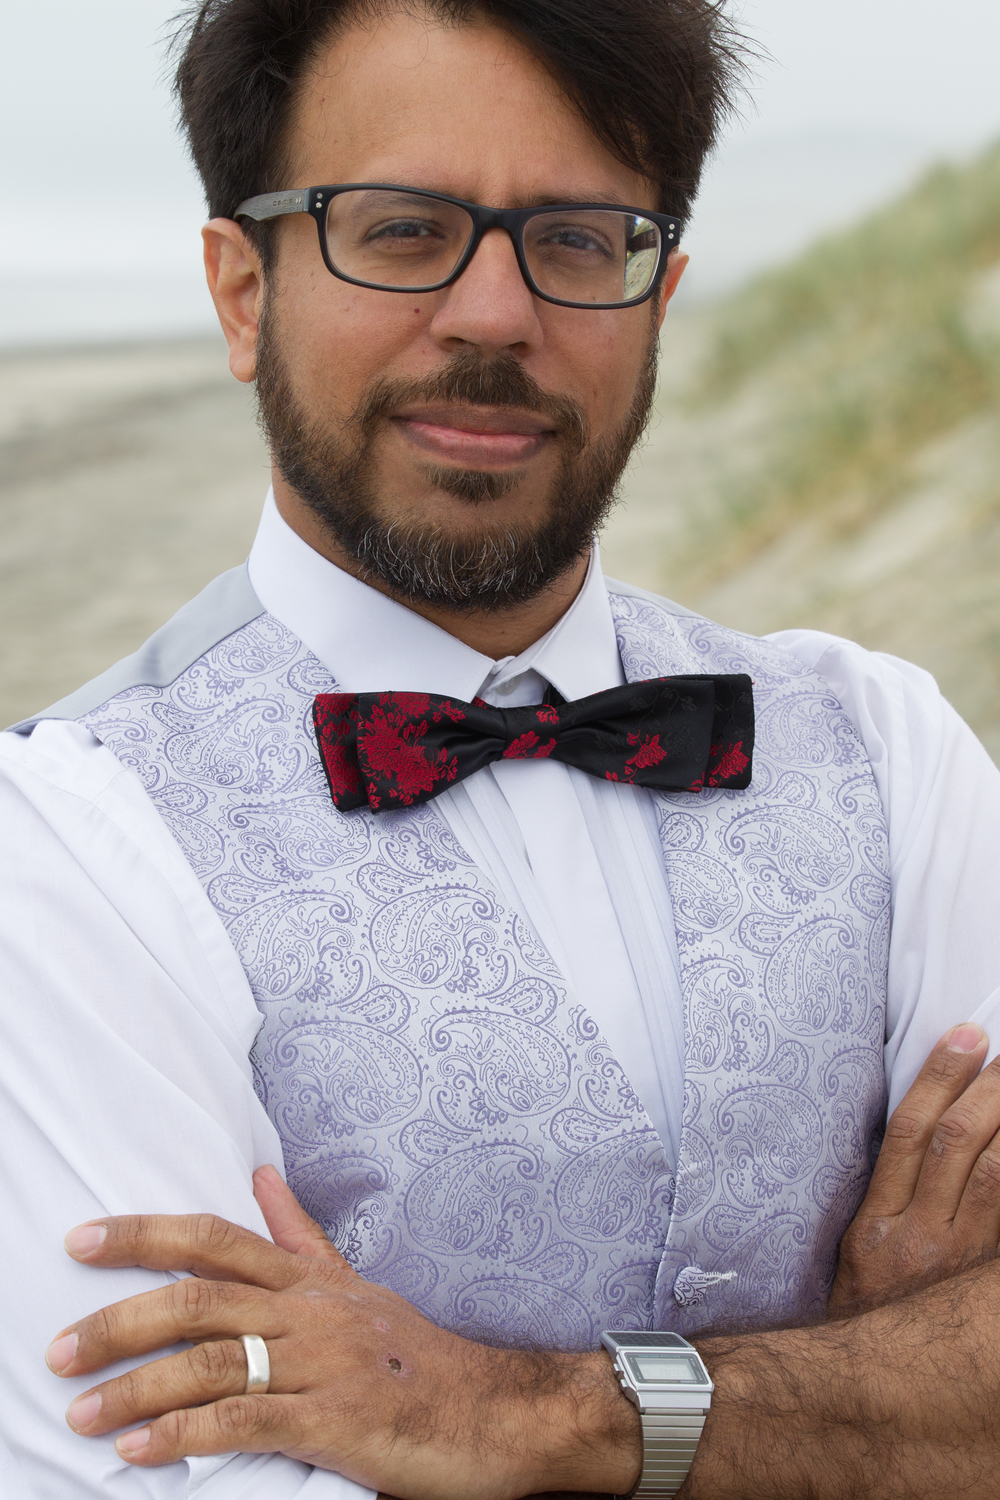 Pair a skinny floral bow tie with a lavender vest for a dapper spring look